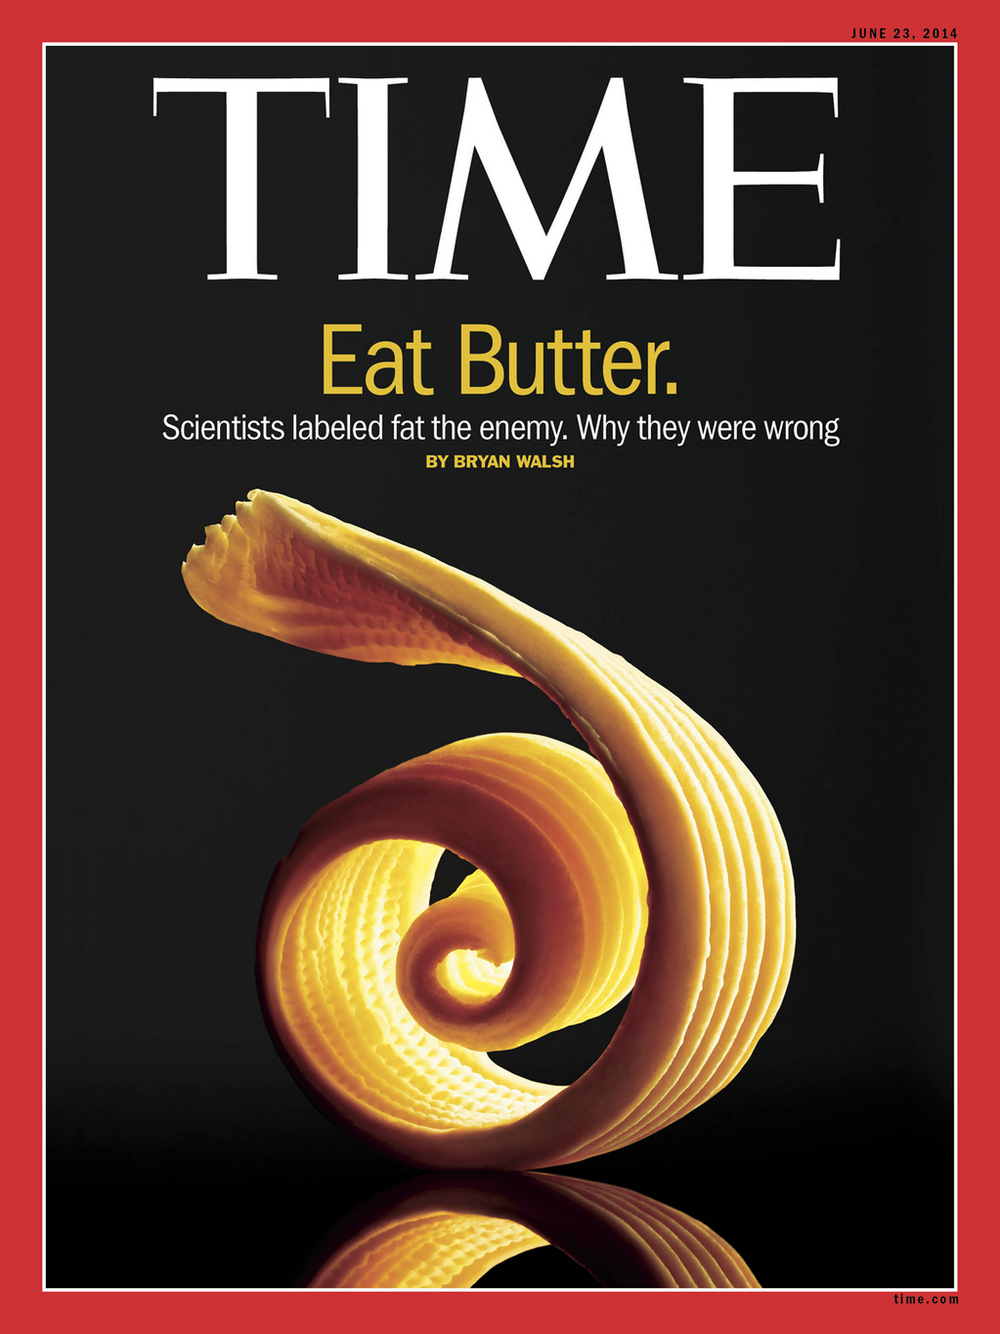 The Science — Eat the Butter